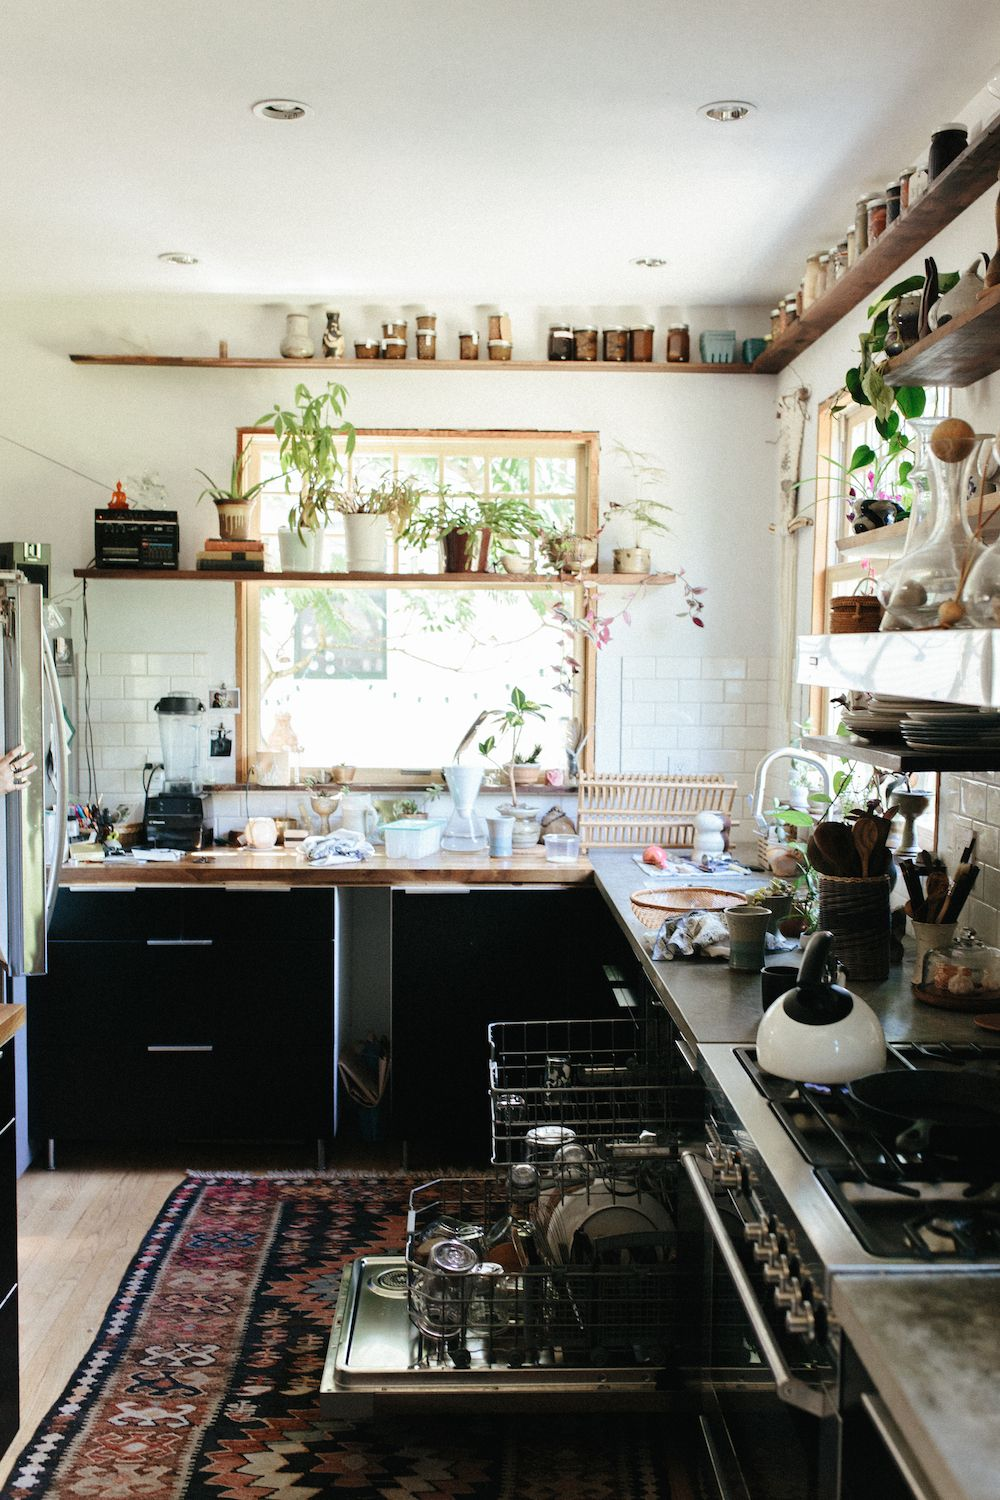 19 Bohemian Kitchens That Make Us Want to Cook While Wearing a